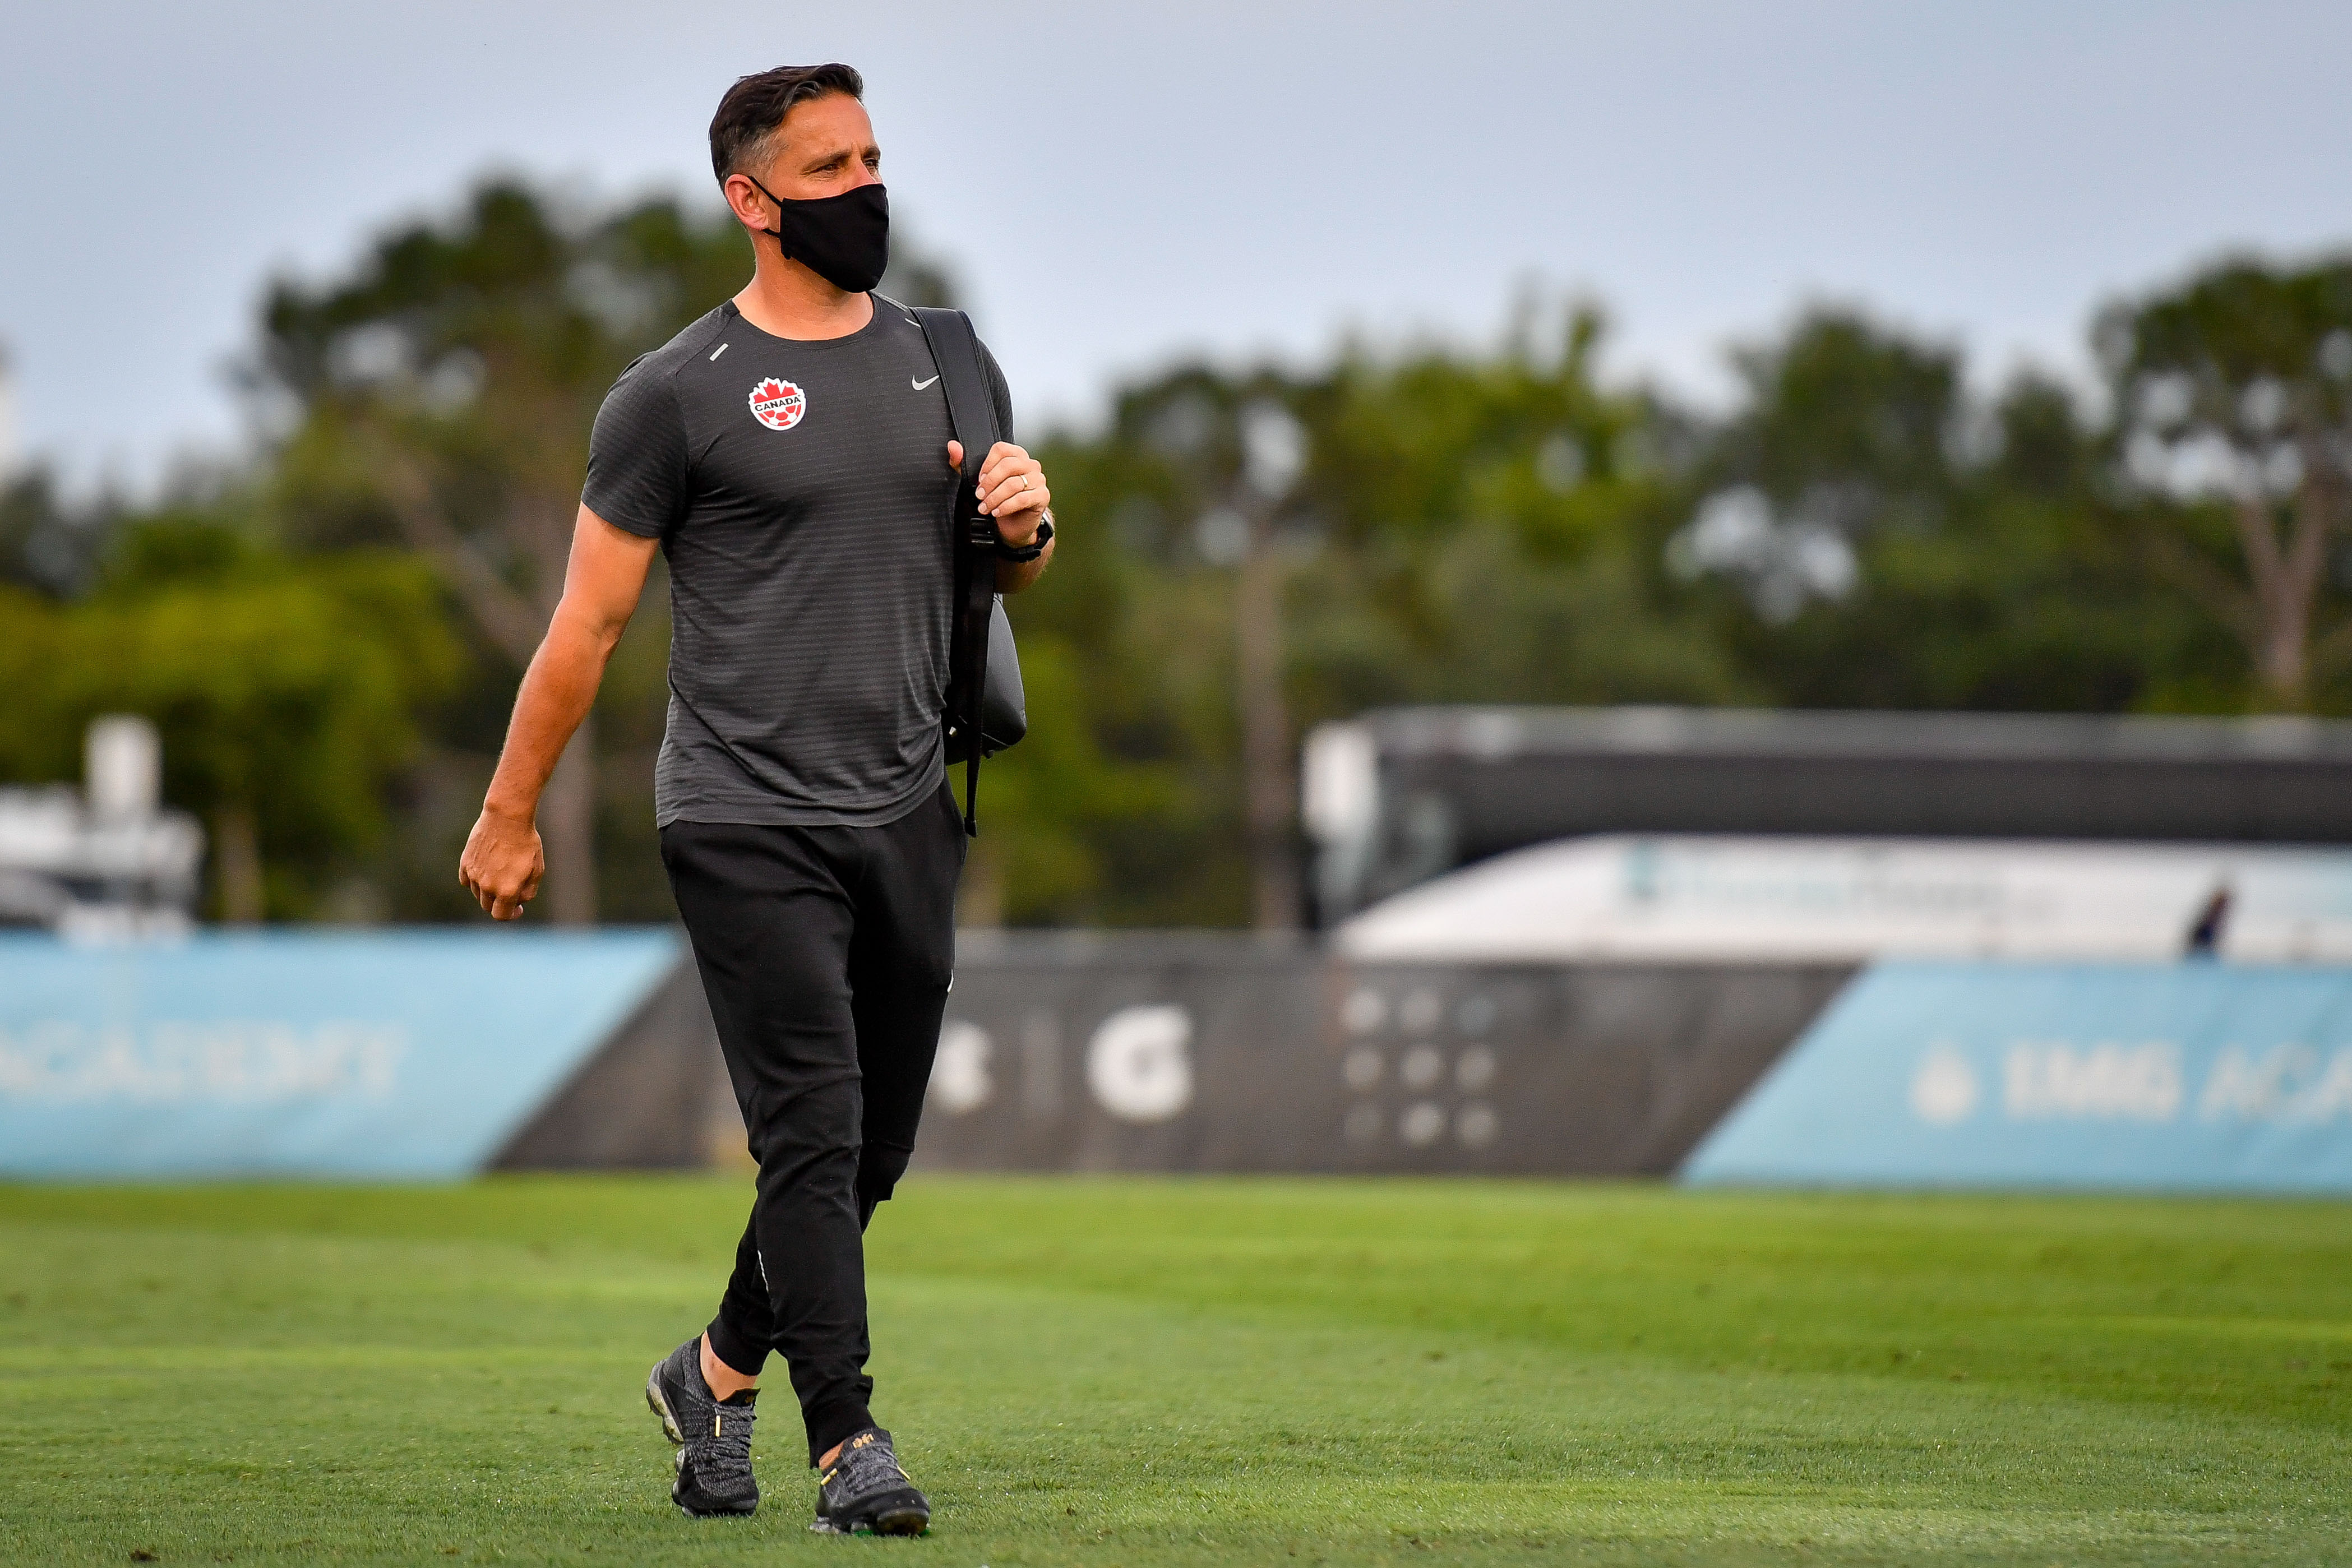 John Herdman in a Canada training session (Photo: Canada Soccer by Doug DeFelice)